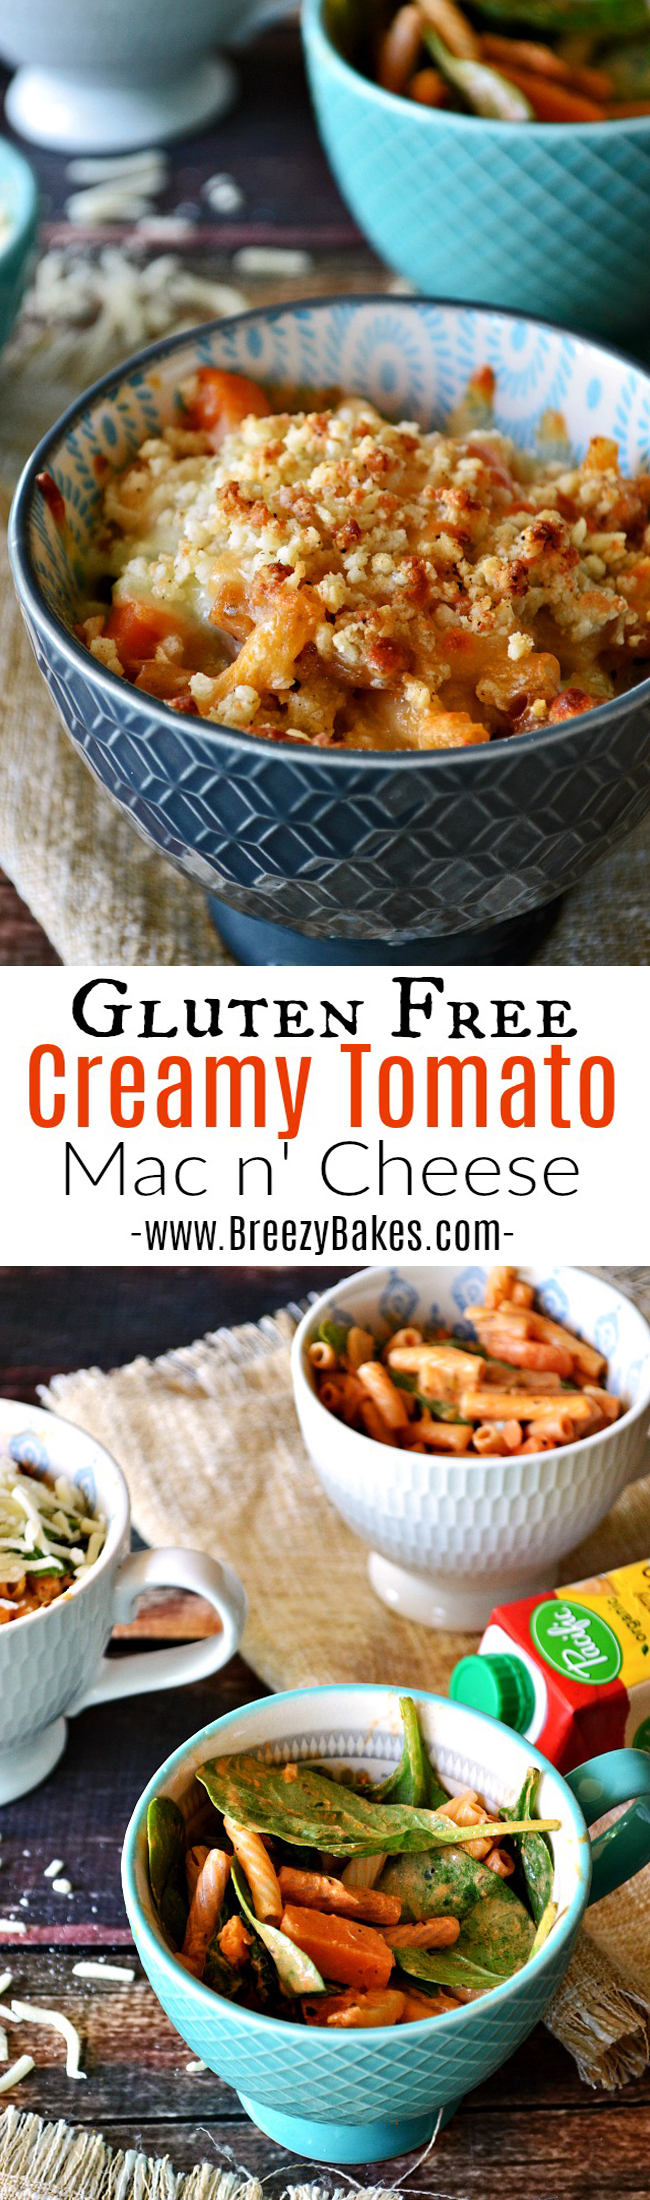 Your kids will love this ultra creamy and satisfyingly savory vegetarian Gluten Free Creamy Tomato Spinach Mac n' Cheese. Hide all kinds of veggies in this kid approved and adult loving individually served pasta dish.